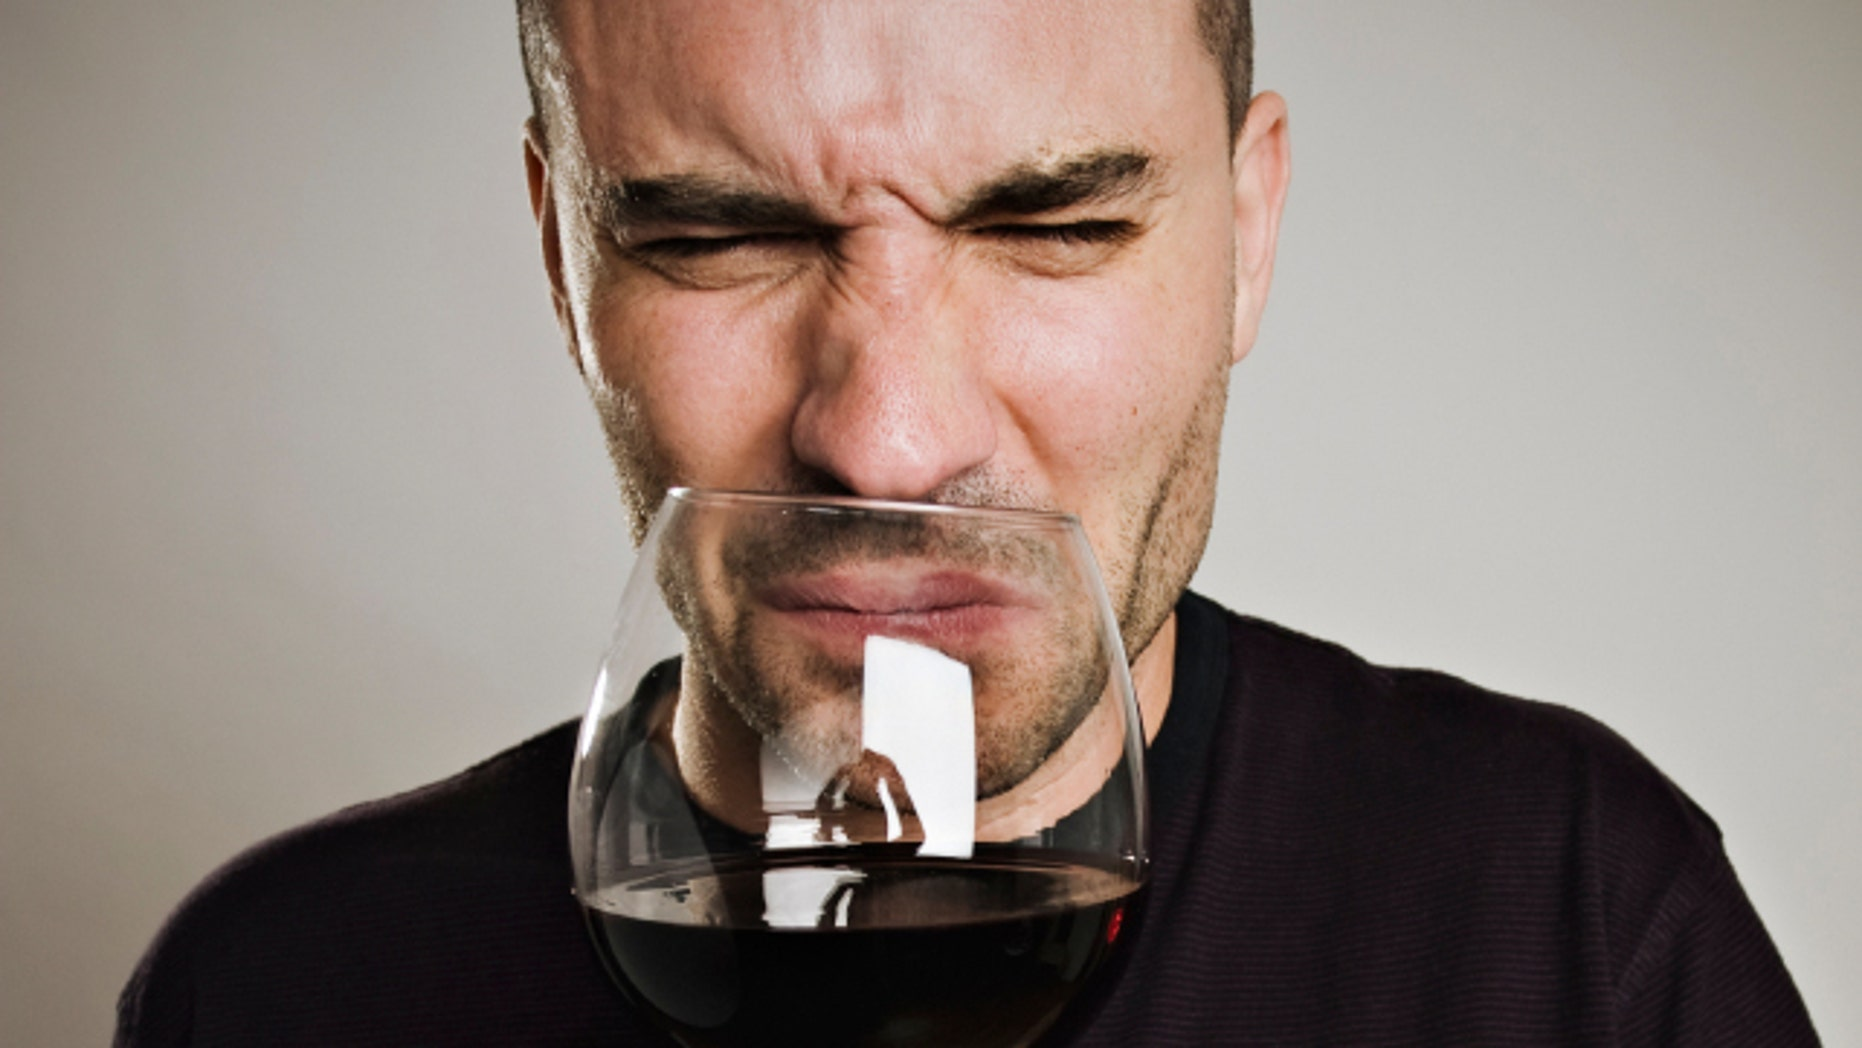 Is there any way to save that horrible tasting wine?